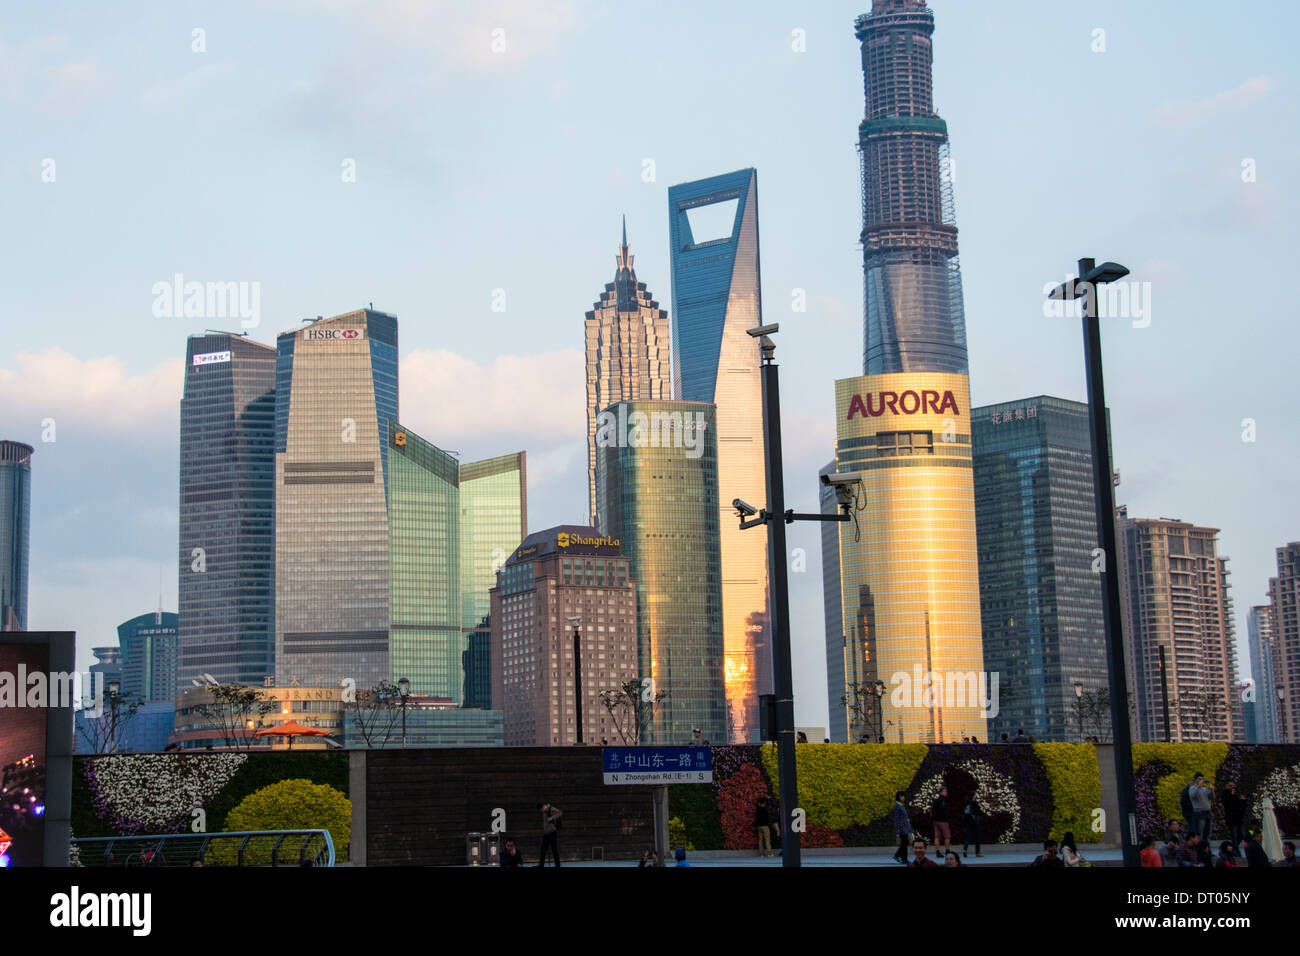 A view of the Pudong skyline; Changhai, China - Stock Image